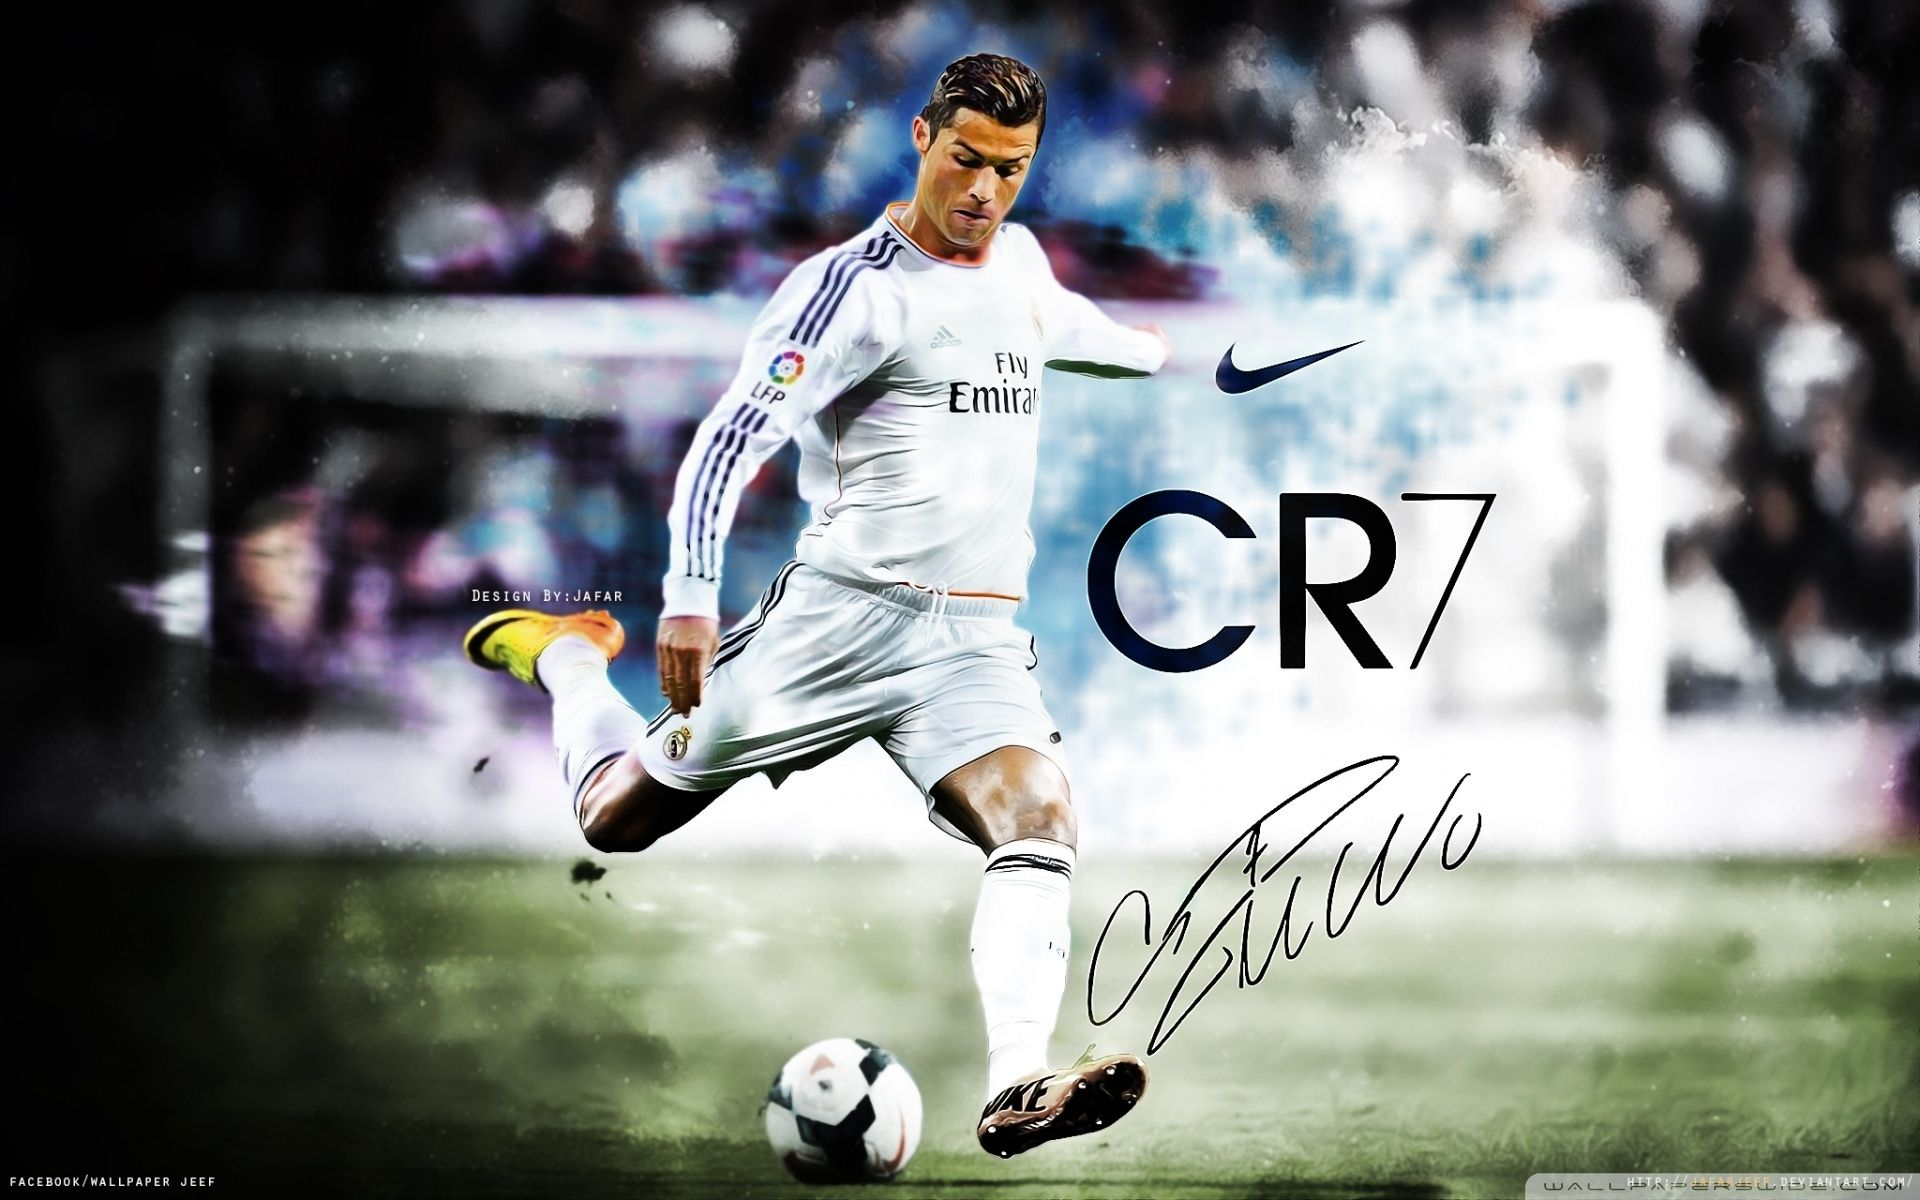 10 Top Cristiano Ronaldo Wallpaper 2014 Full Hd 1080p For Pc Desktop Ronaldo Wallpapers Ronaldo Cristiano Ronaldo Wallpapers